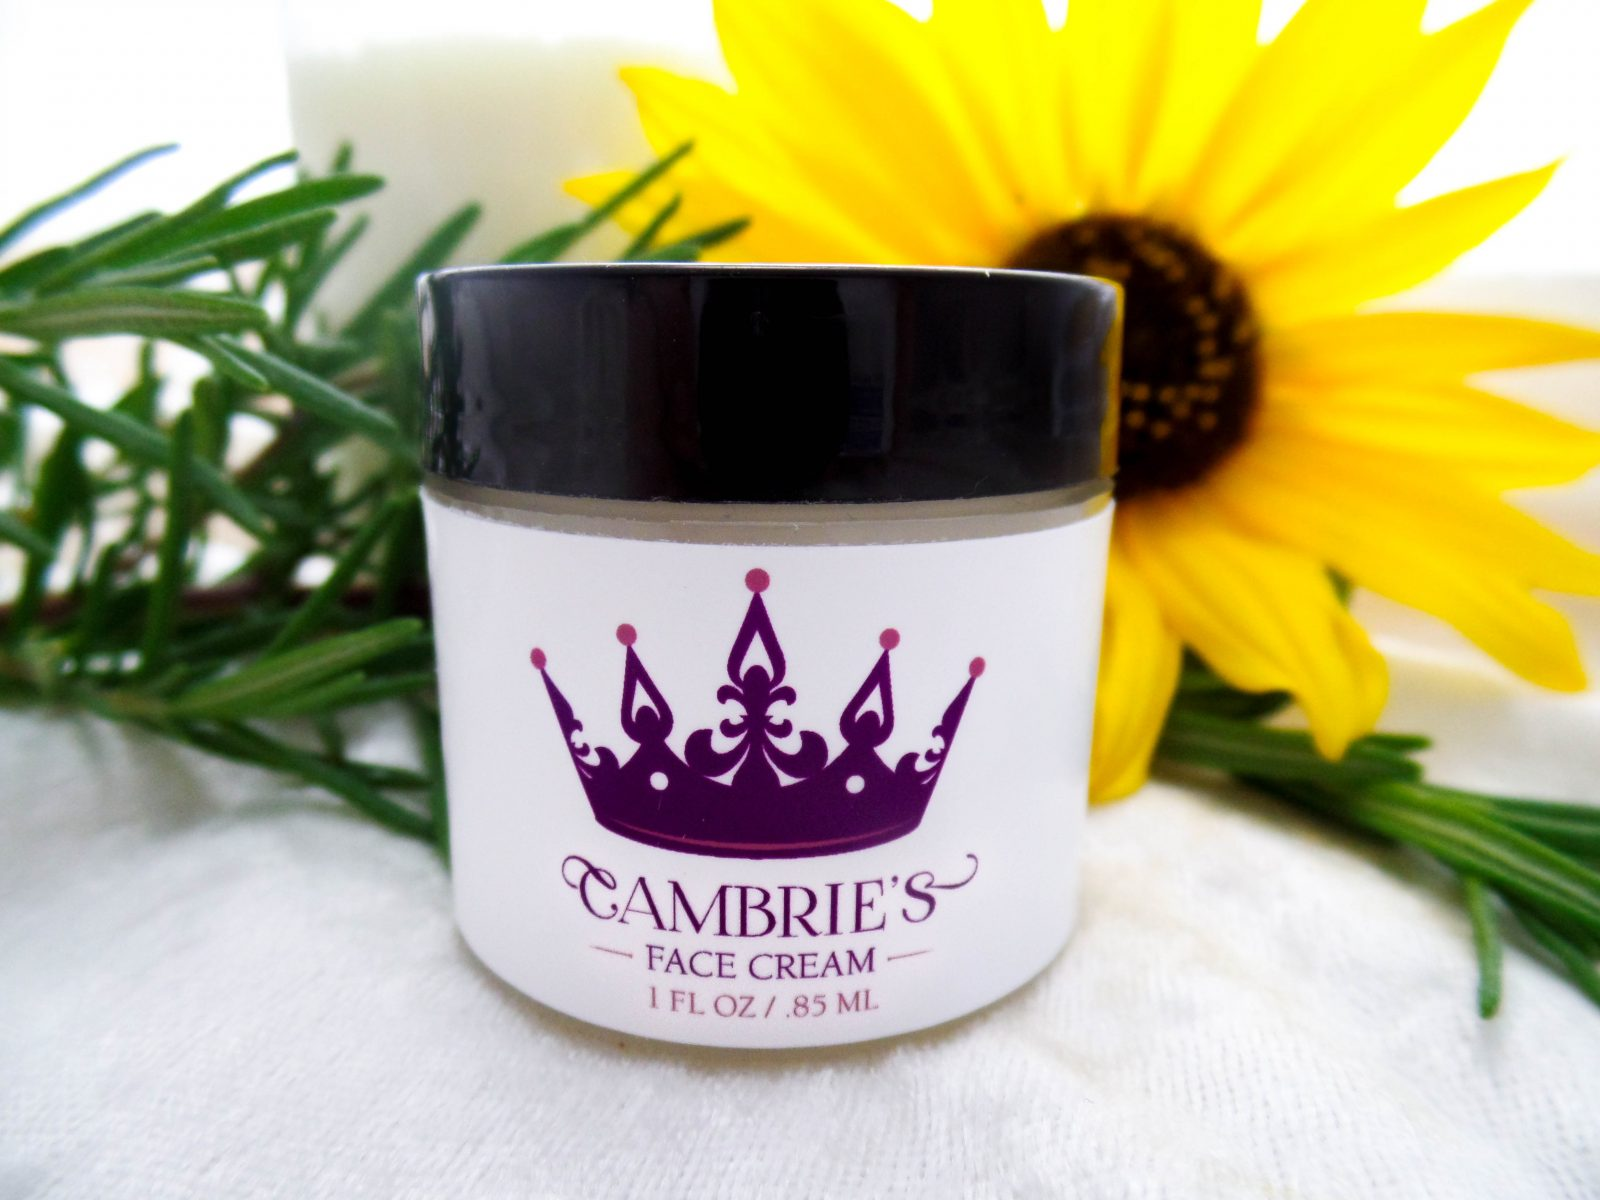 Cambries Face Cream Label